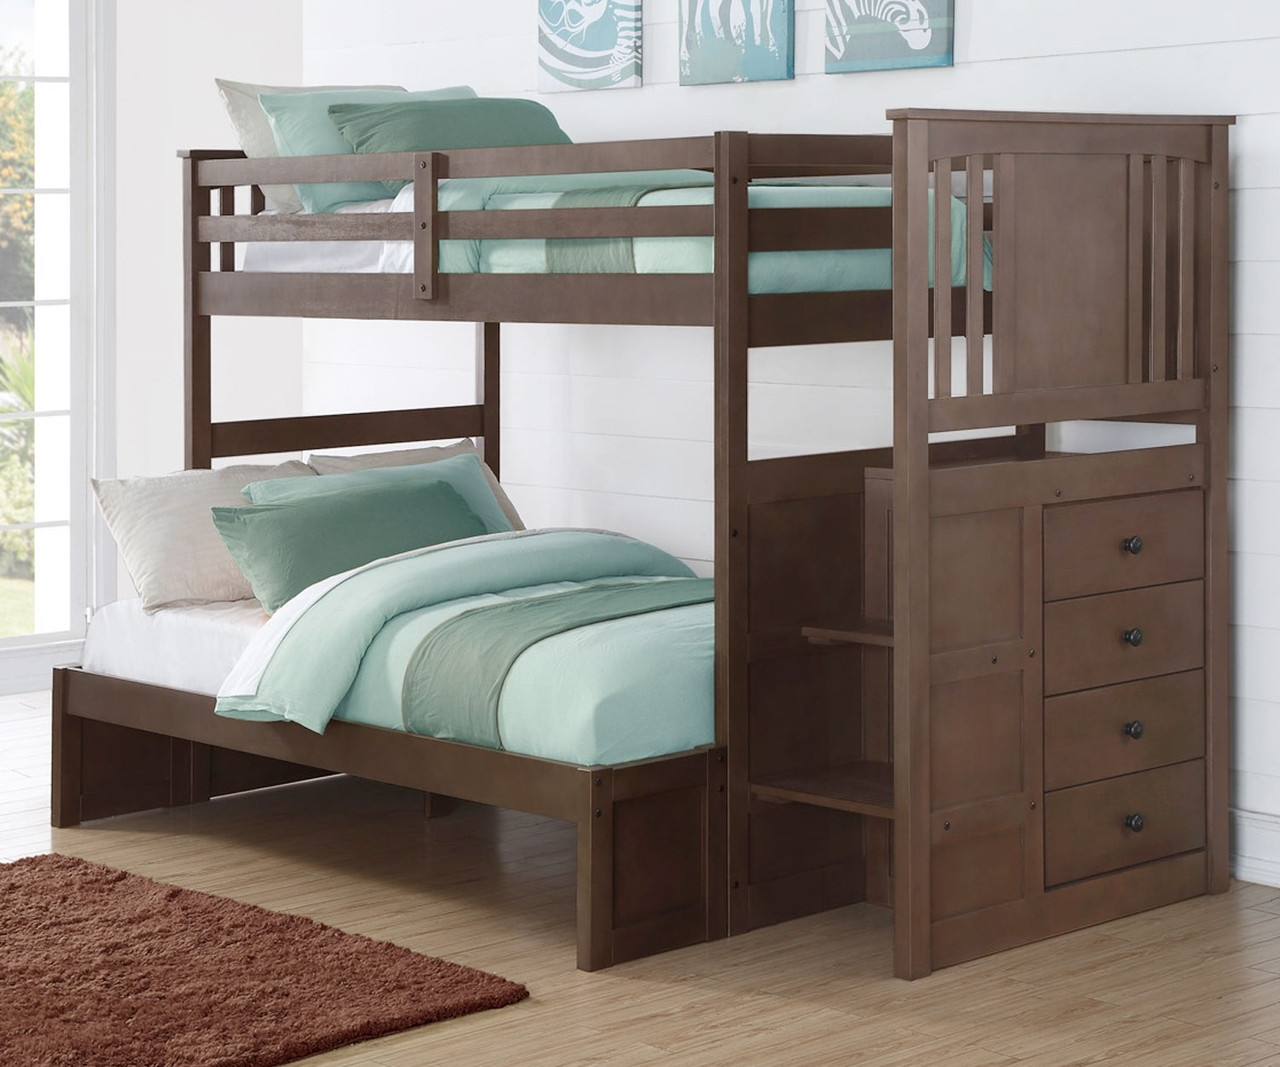 Donco Trading Princeton Twin Over Full Stairway Bunk Bed 2204sg Solid Wood Bunk Bed Donco Furniture